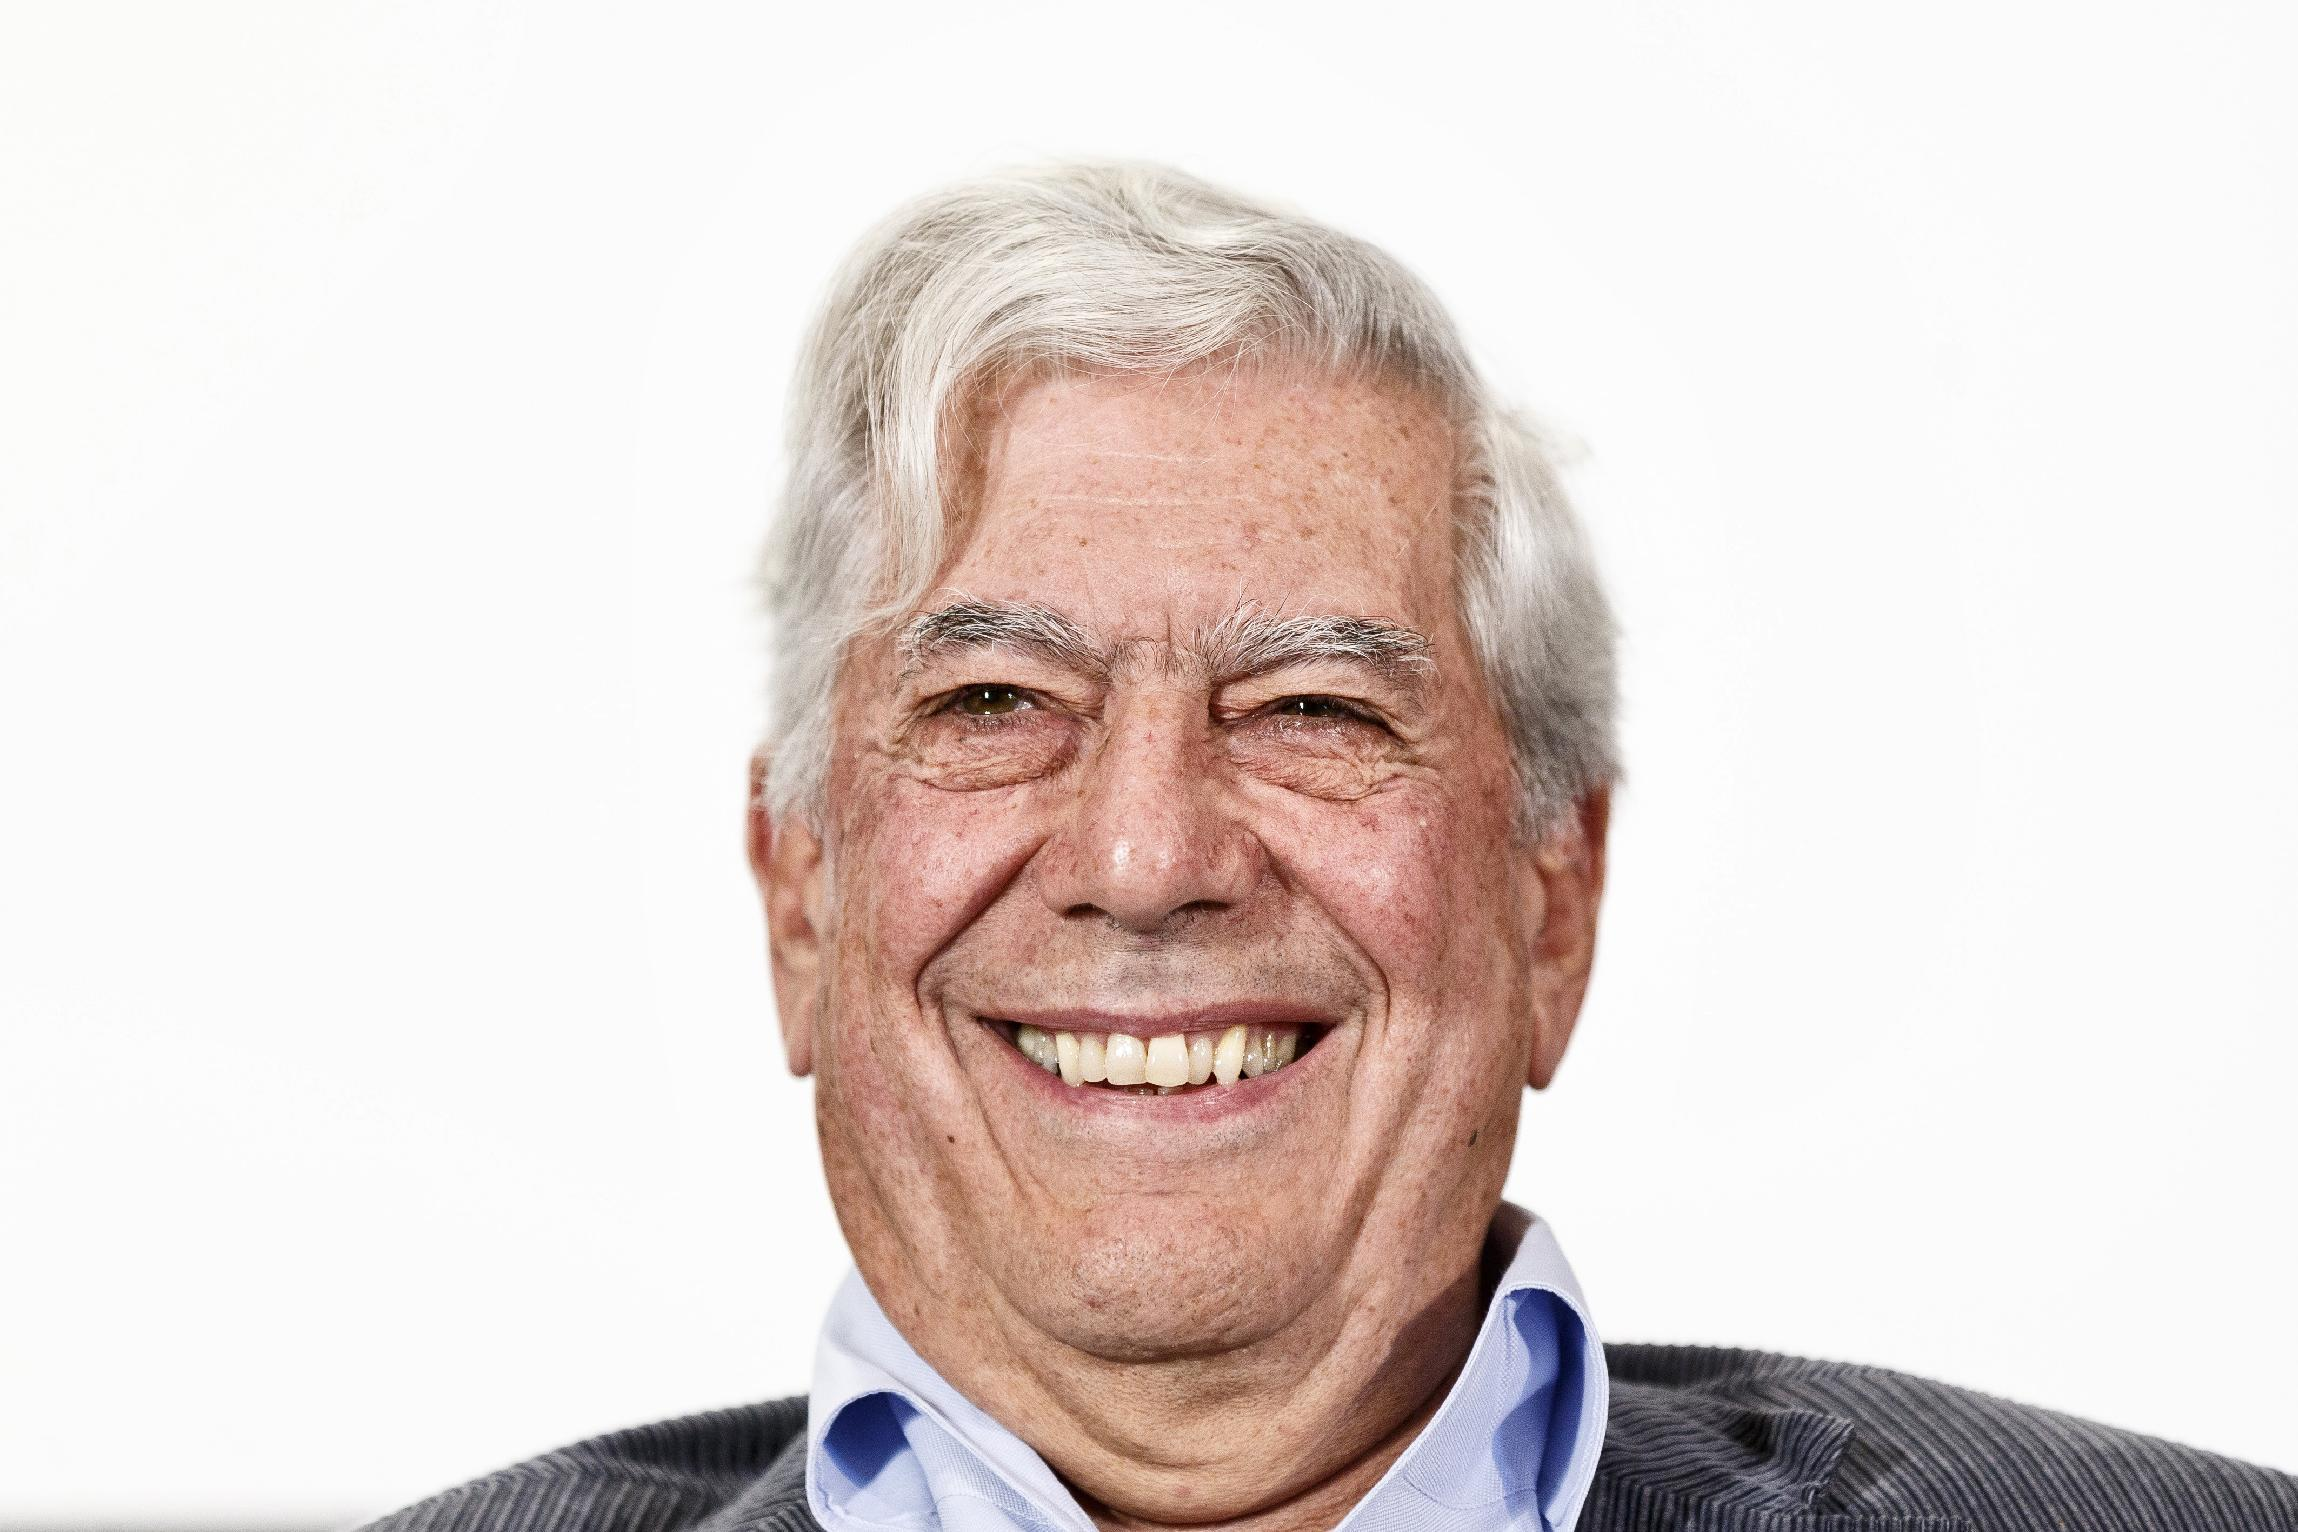 Report: Nobel winner Vargas Llosa confirms new romantic tie